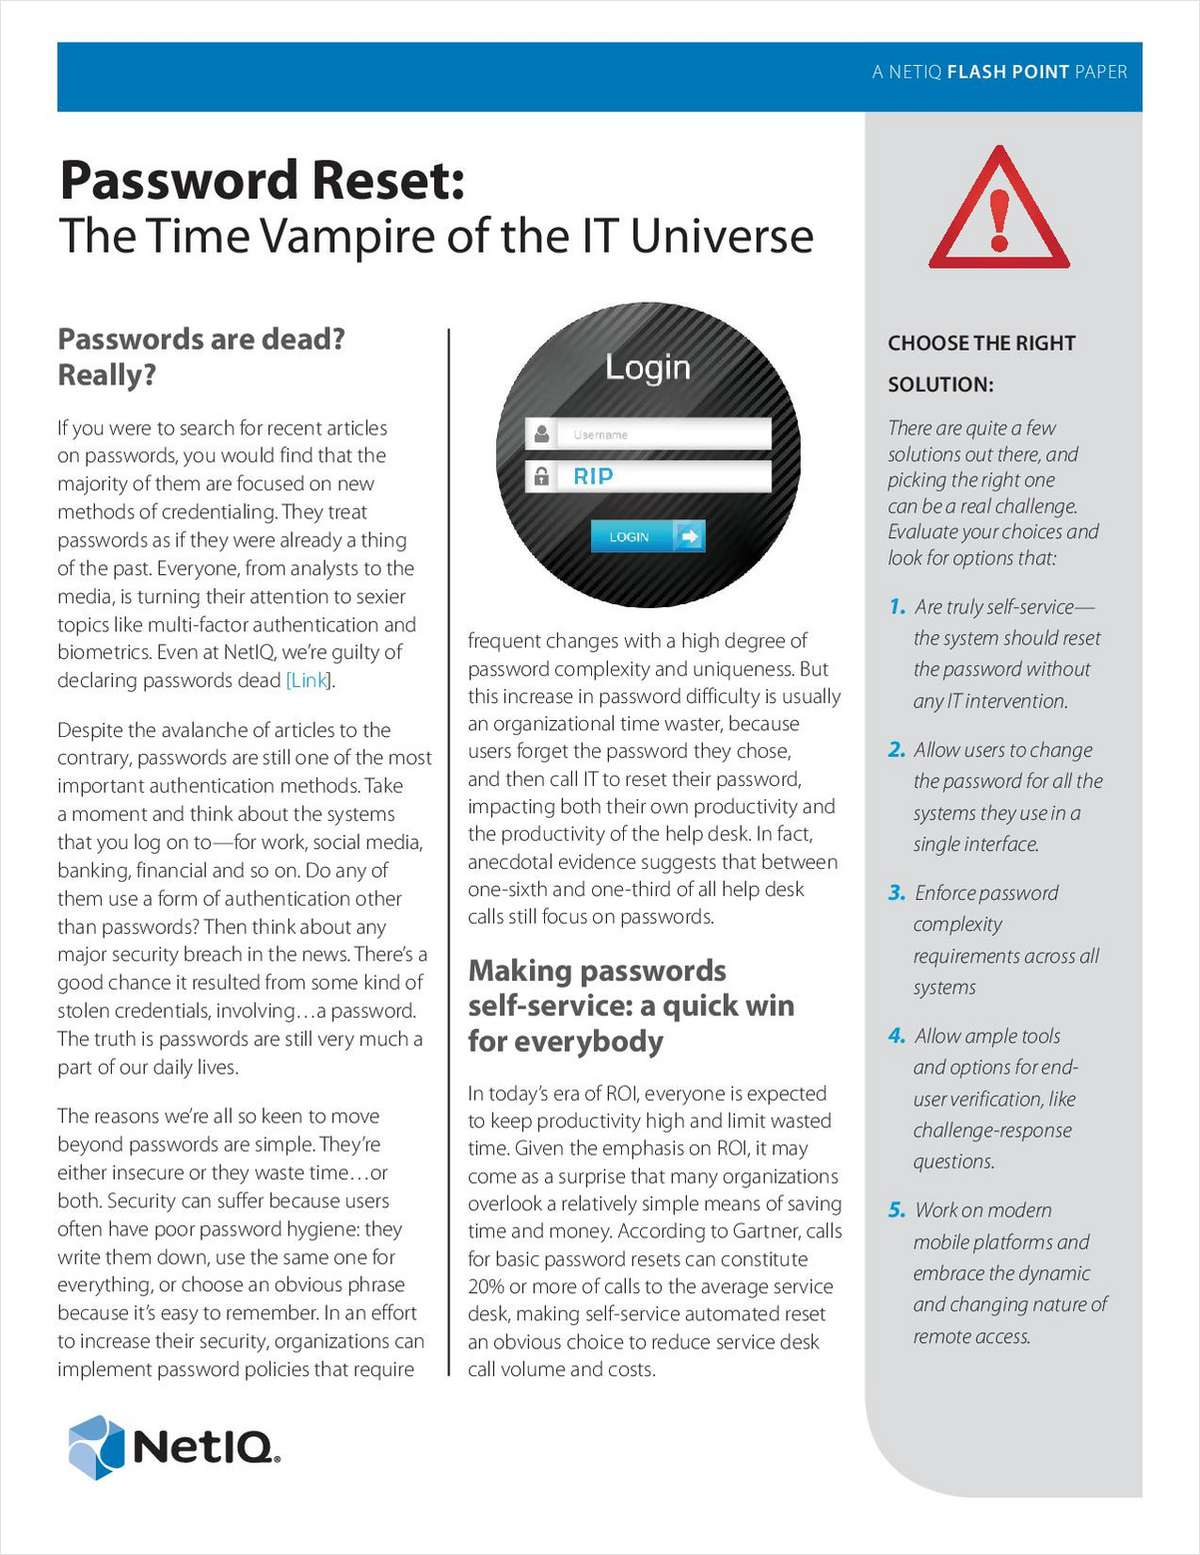 Password Reset: The Time Vampire of the IT Universe